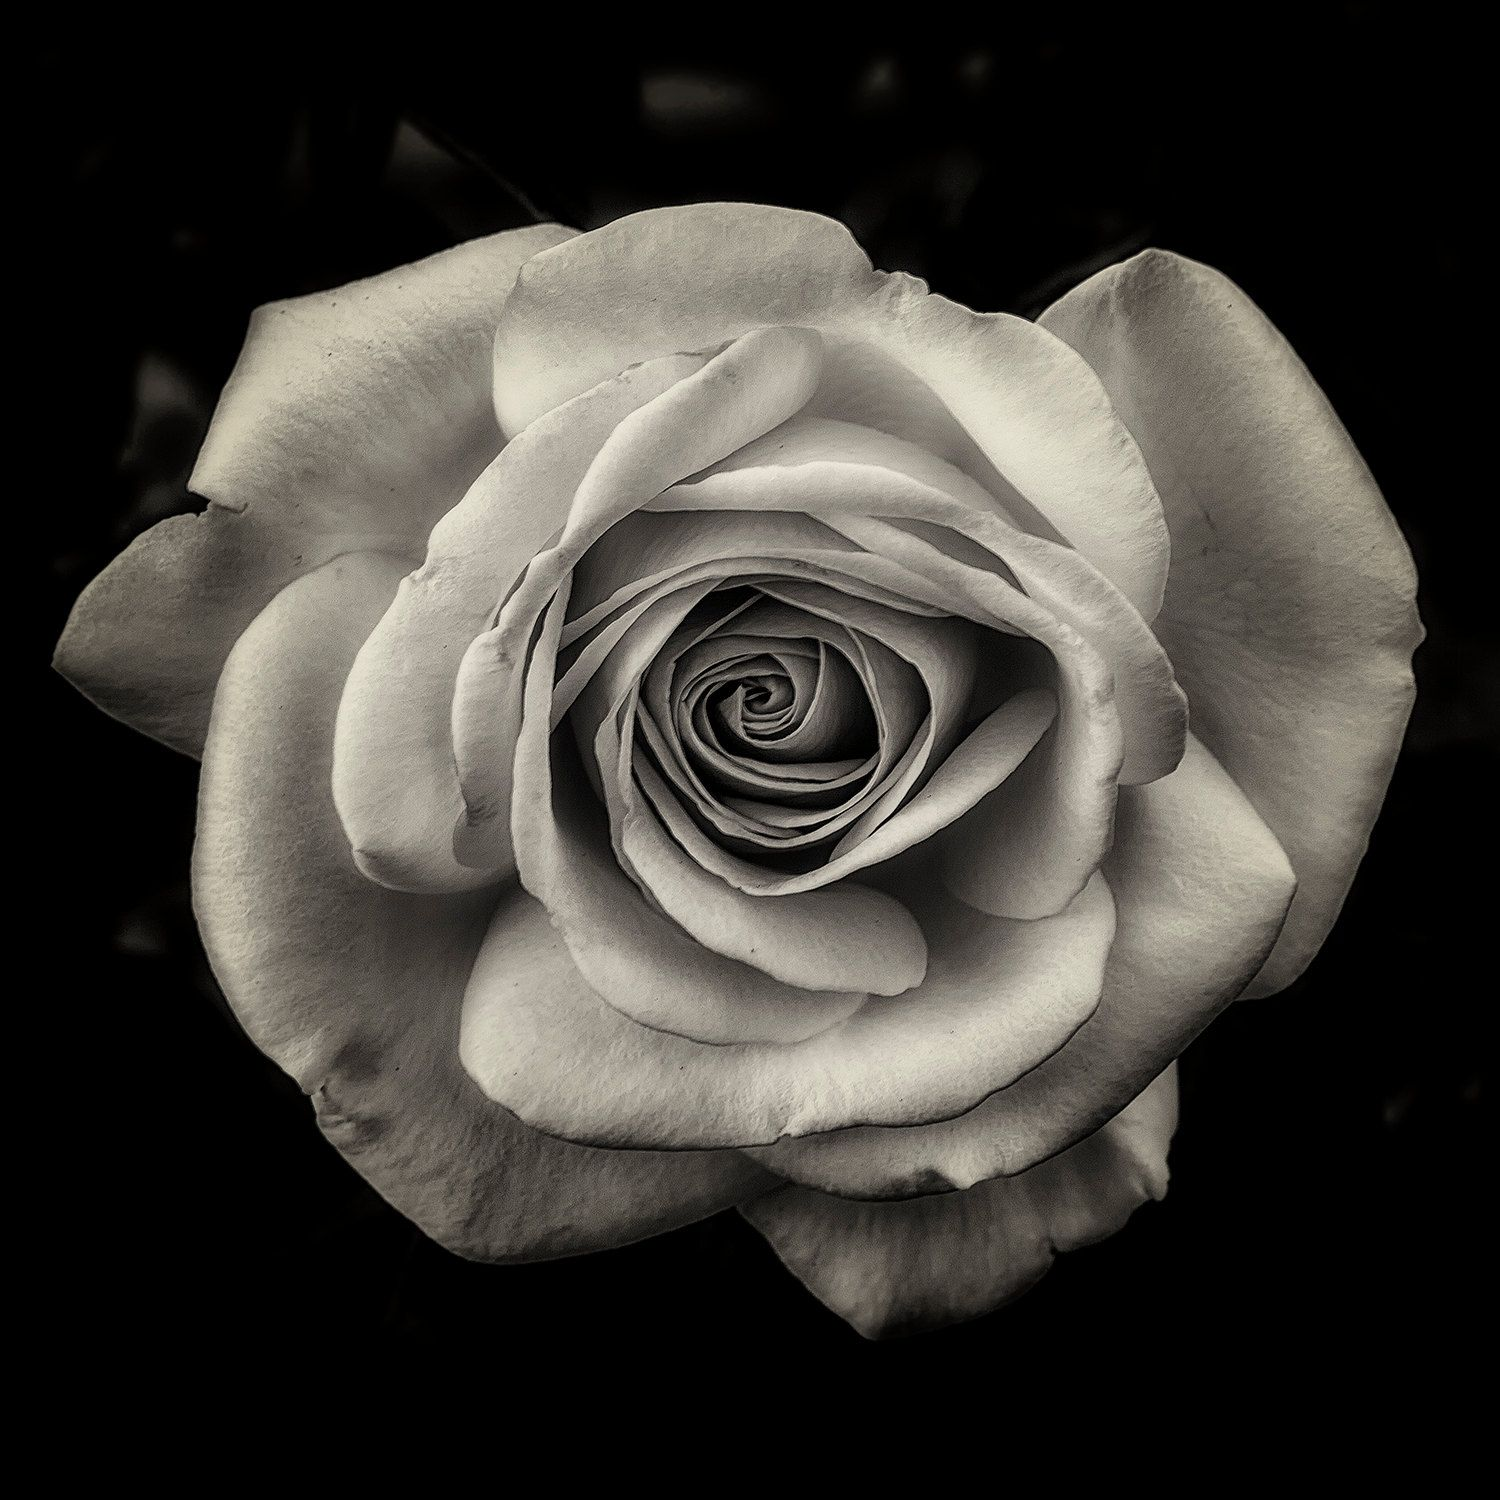 Ethereal landscapes nature photography by donna geissler - A Sharon To A Rose